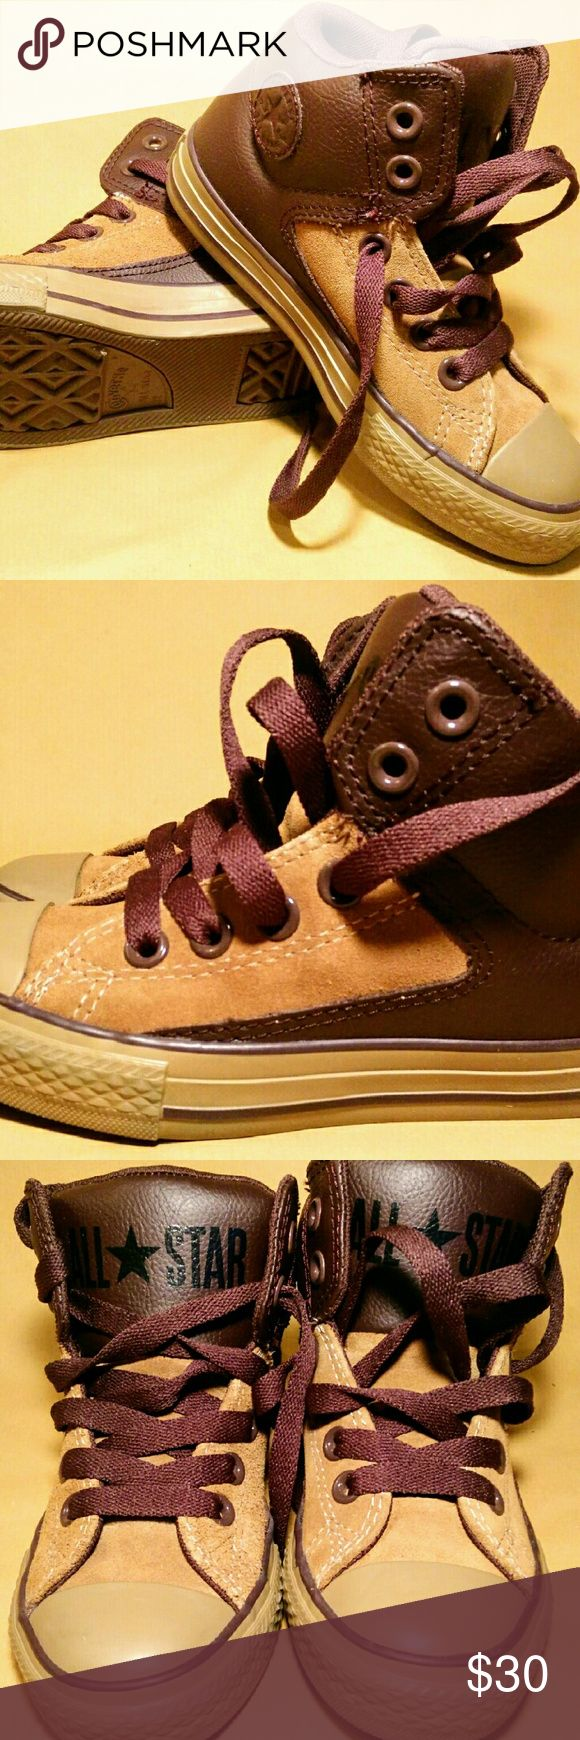 Converse Chuck Taylor Brown Converse Chuck Taylor all star street high top sneaker Converse Shoes Sneakers